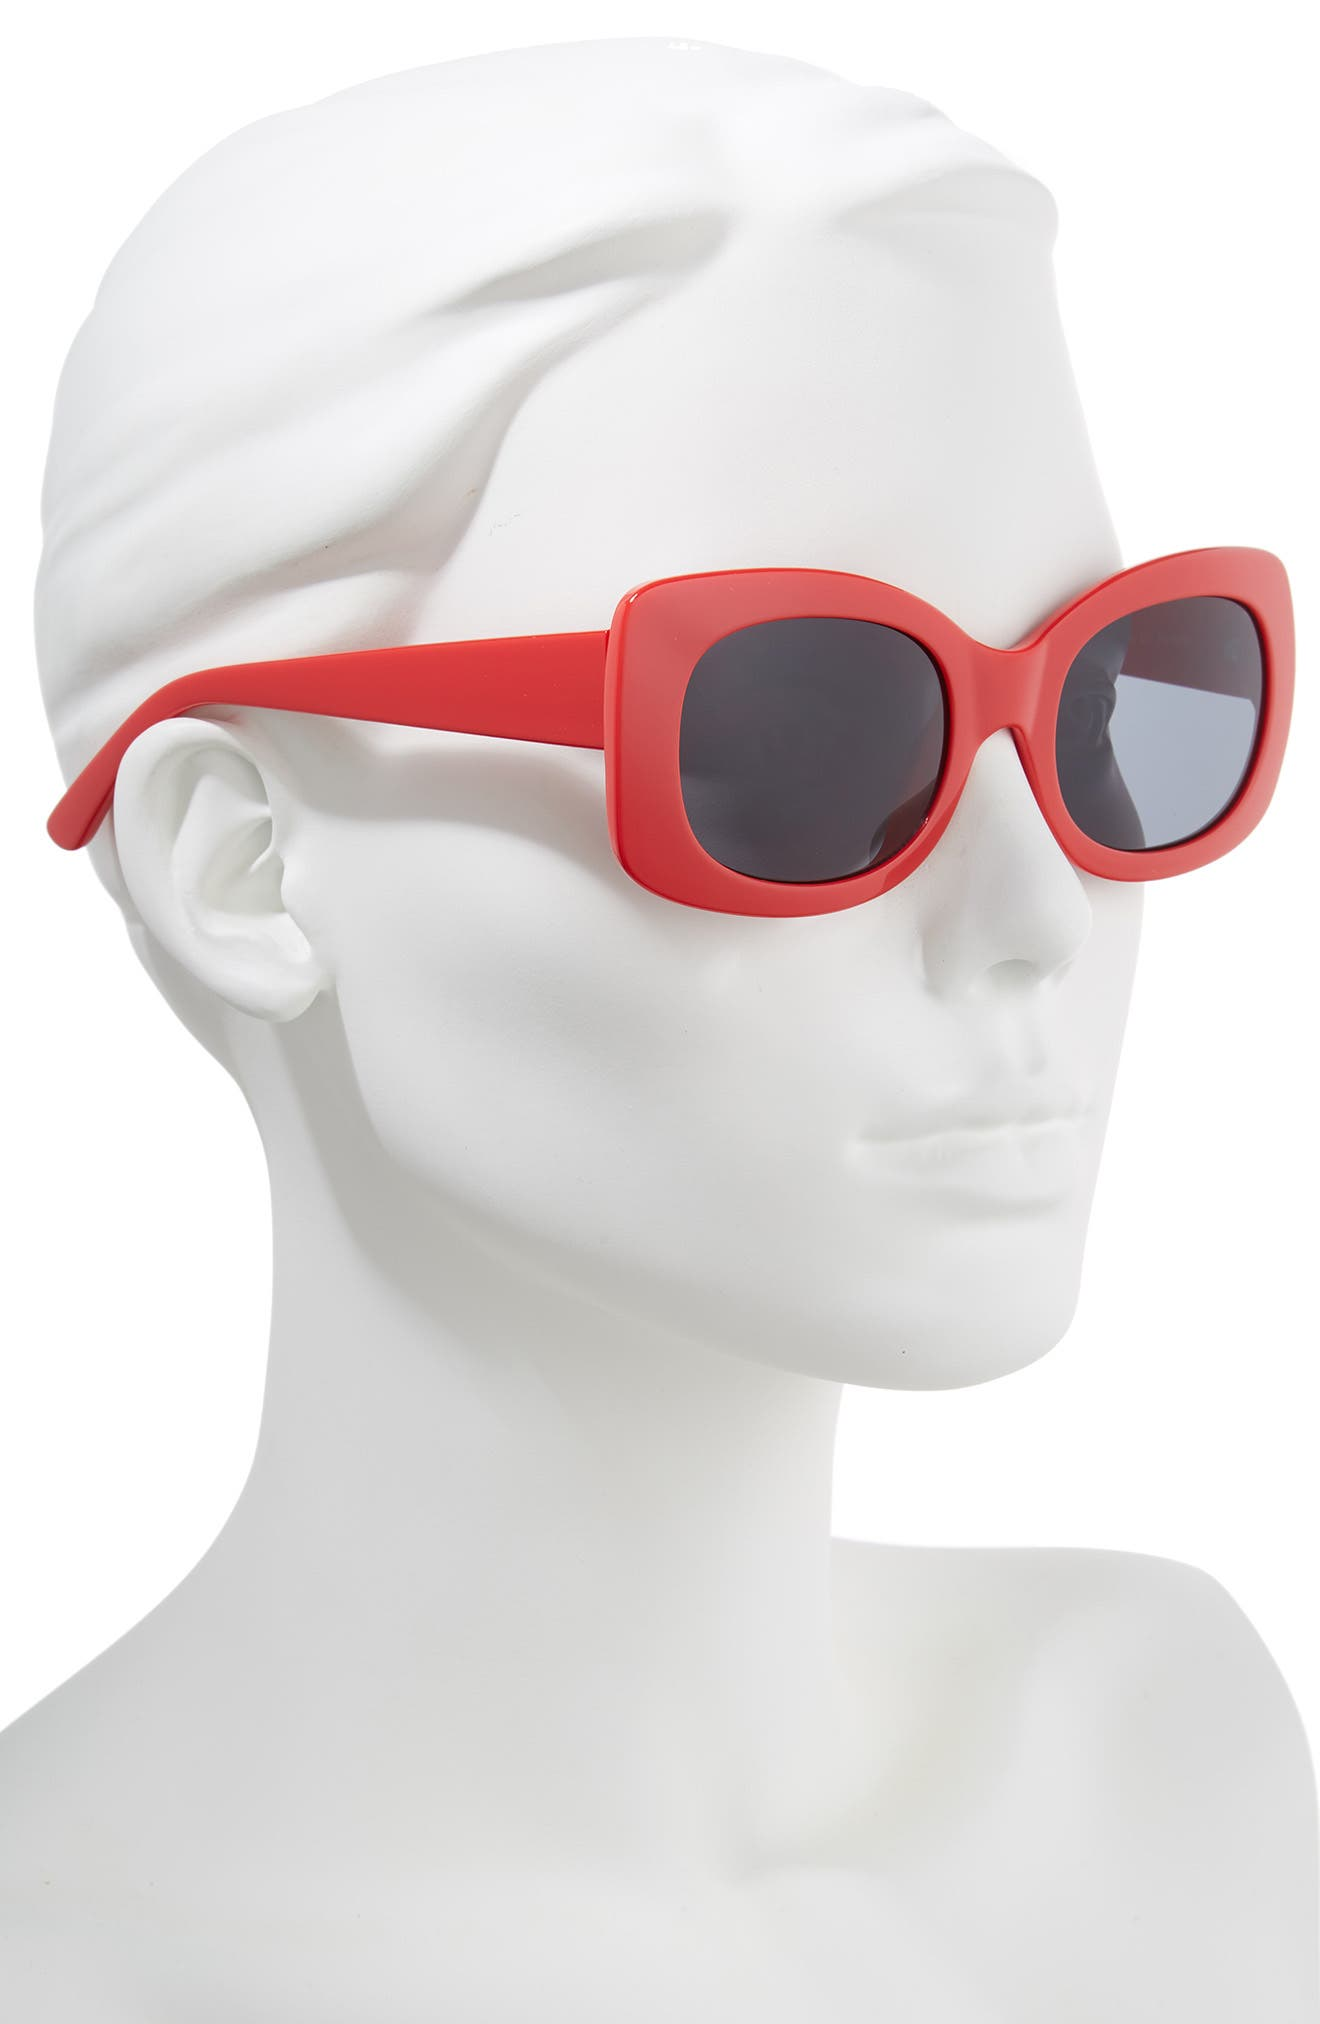 51mm Square Sunglasses,                             Alternate thumbnail 2, color,                             RED/ BLACK